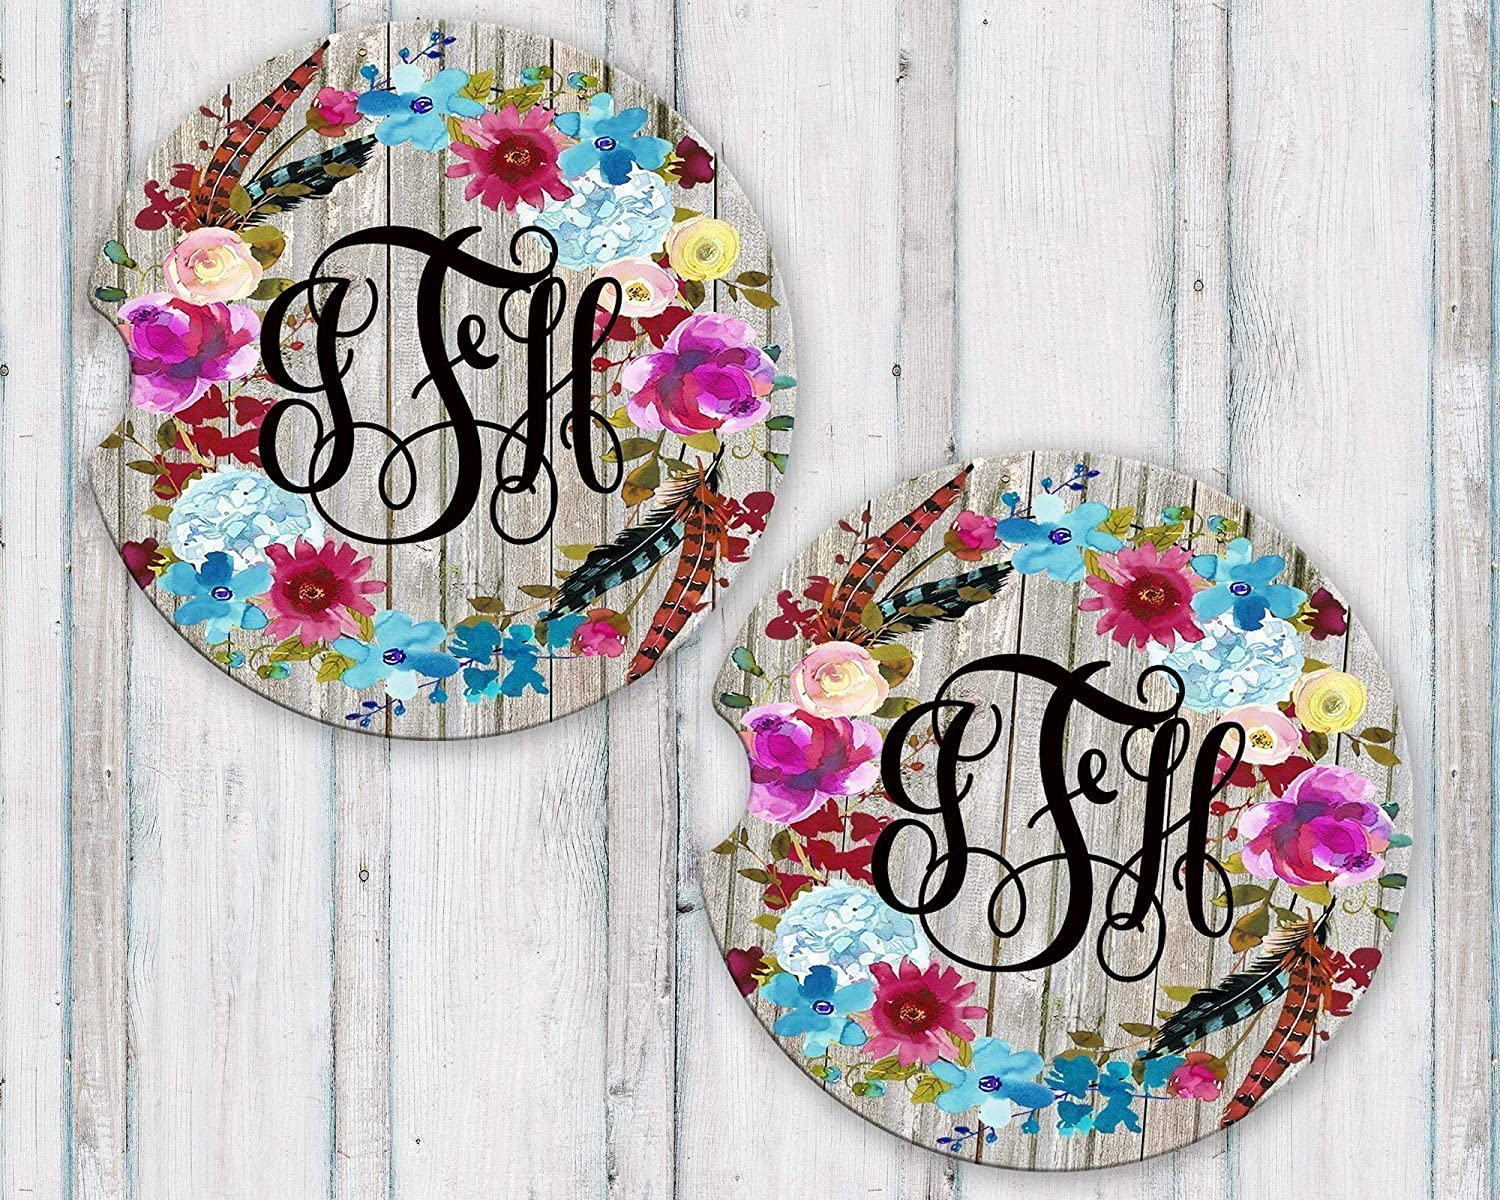 Personalized Monogram Sandstone Car Coasters Boho Floral Wreath Grey Barn Wood Background Set of 2